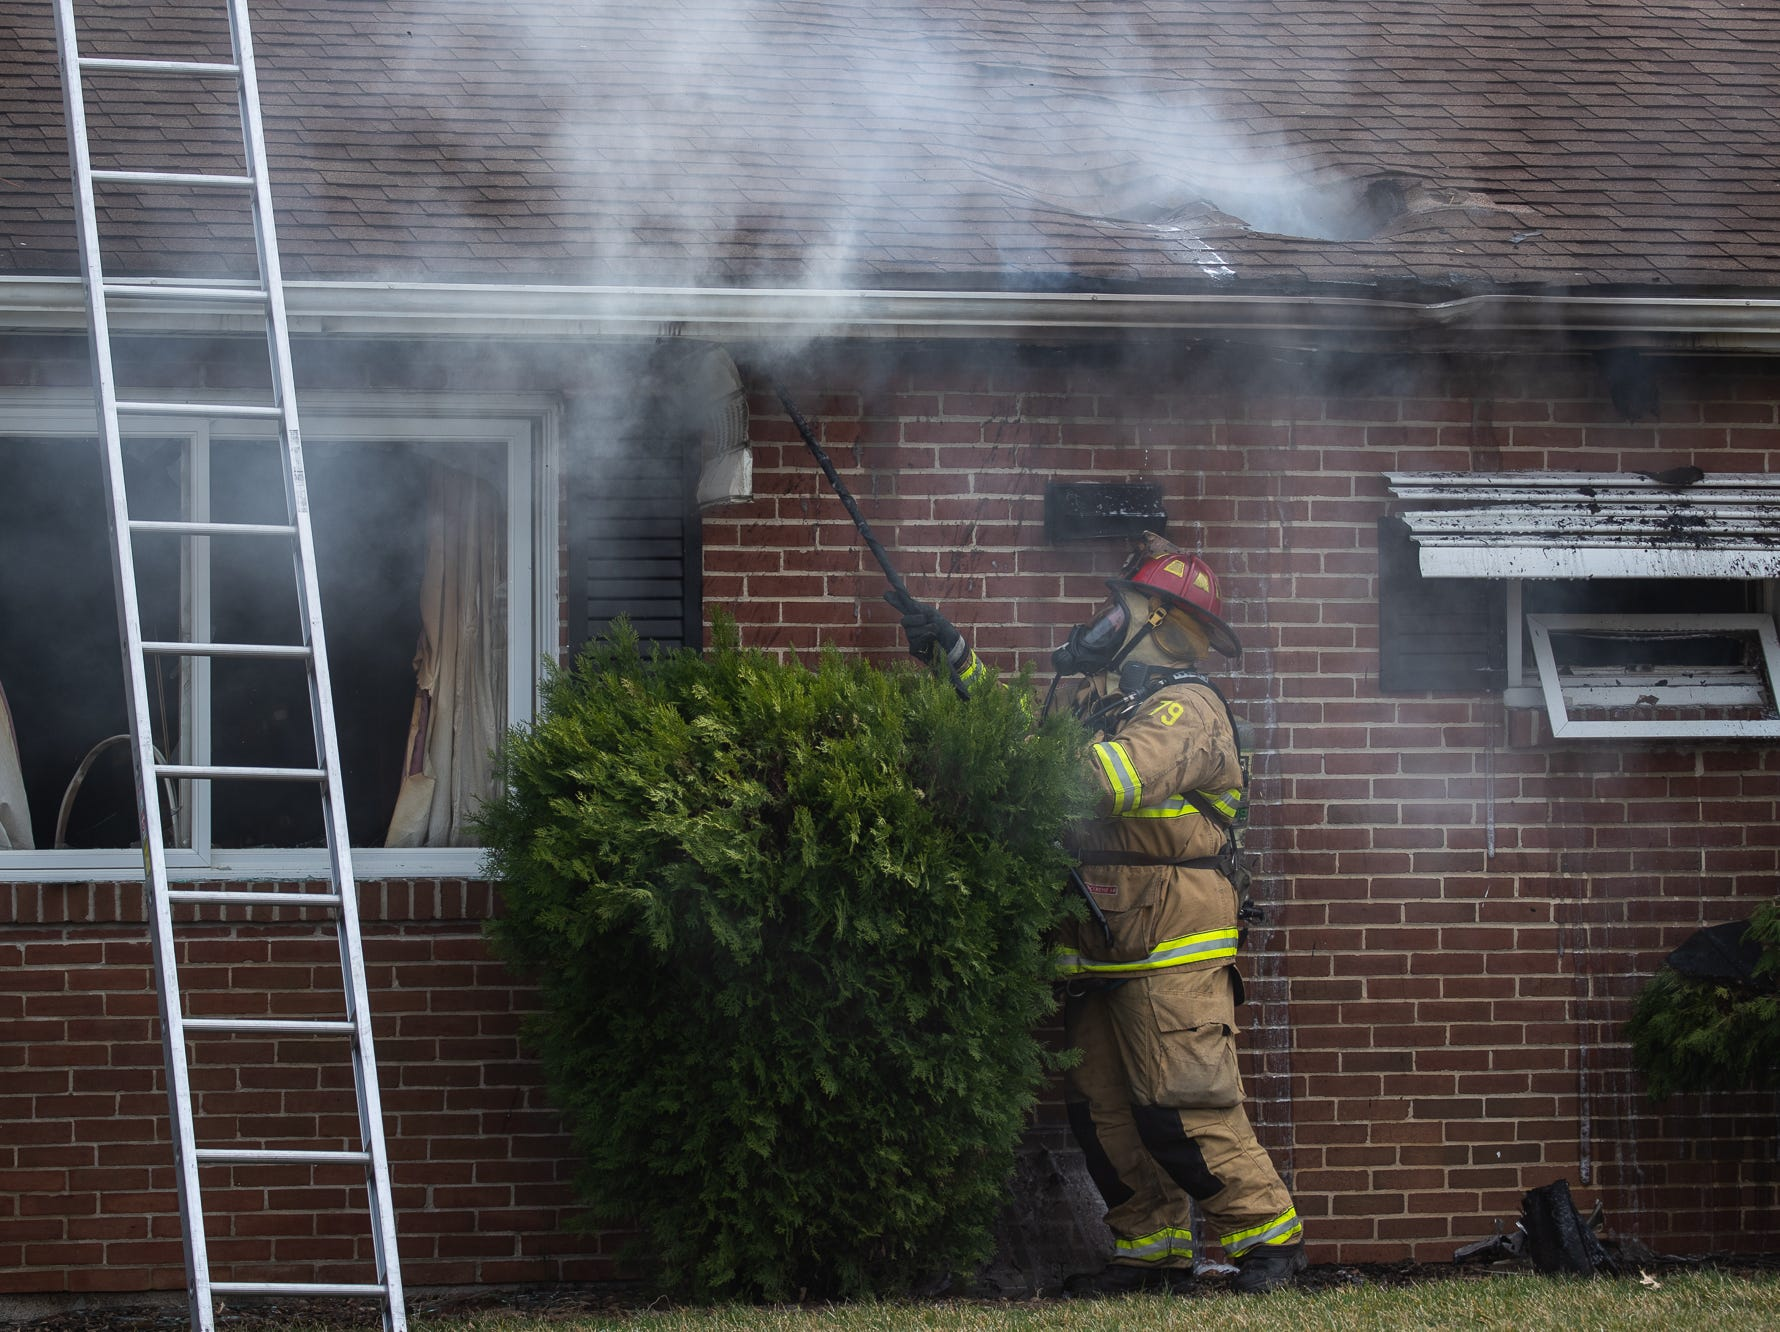 Firefighters work at the scene of a house fire on the 100 block of Mumma Ave., Saturday, March 30, 2019, in Penn Township. No one was injured in the fire, which appears to have been an accidental fire in the kitchen, said Hanover Area Fire & Rescue Chief Tony Clousher.